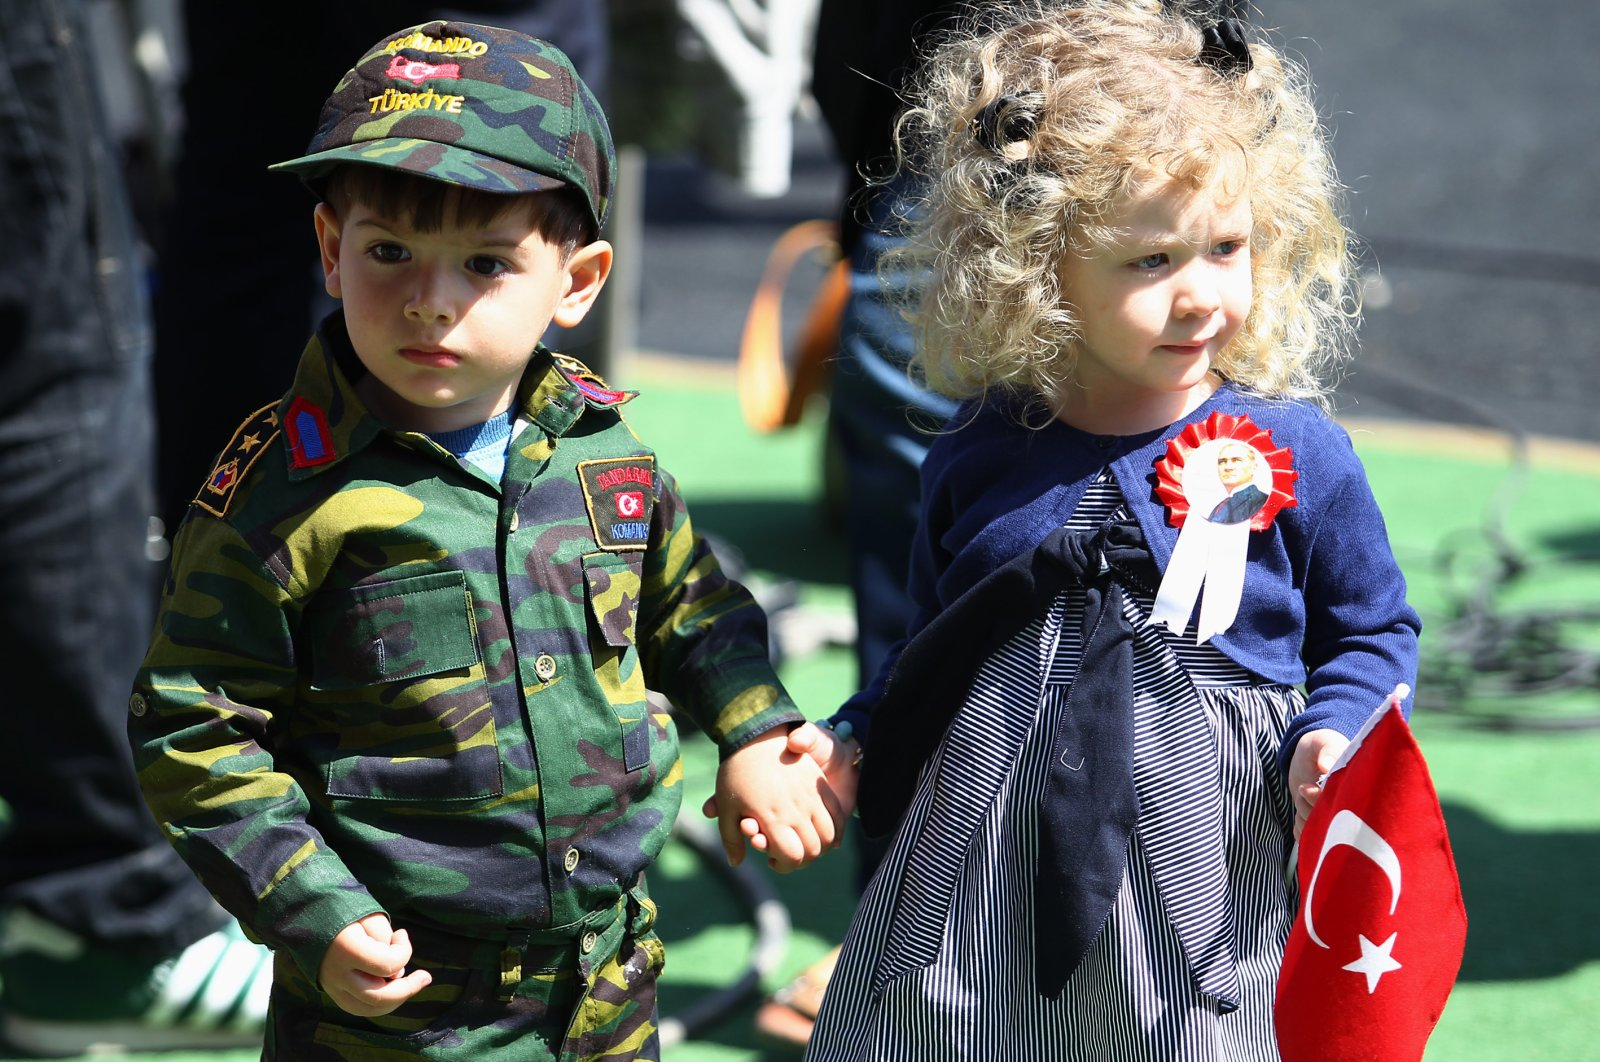 According to the newest data, children make up 27% of Turkey's population. (AA Photo)